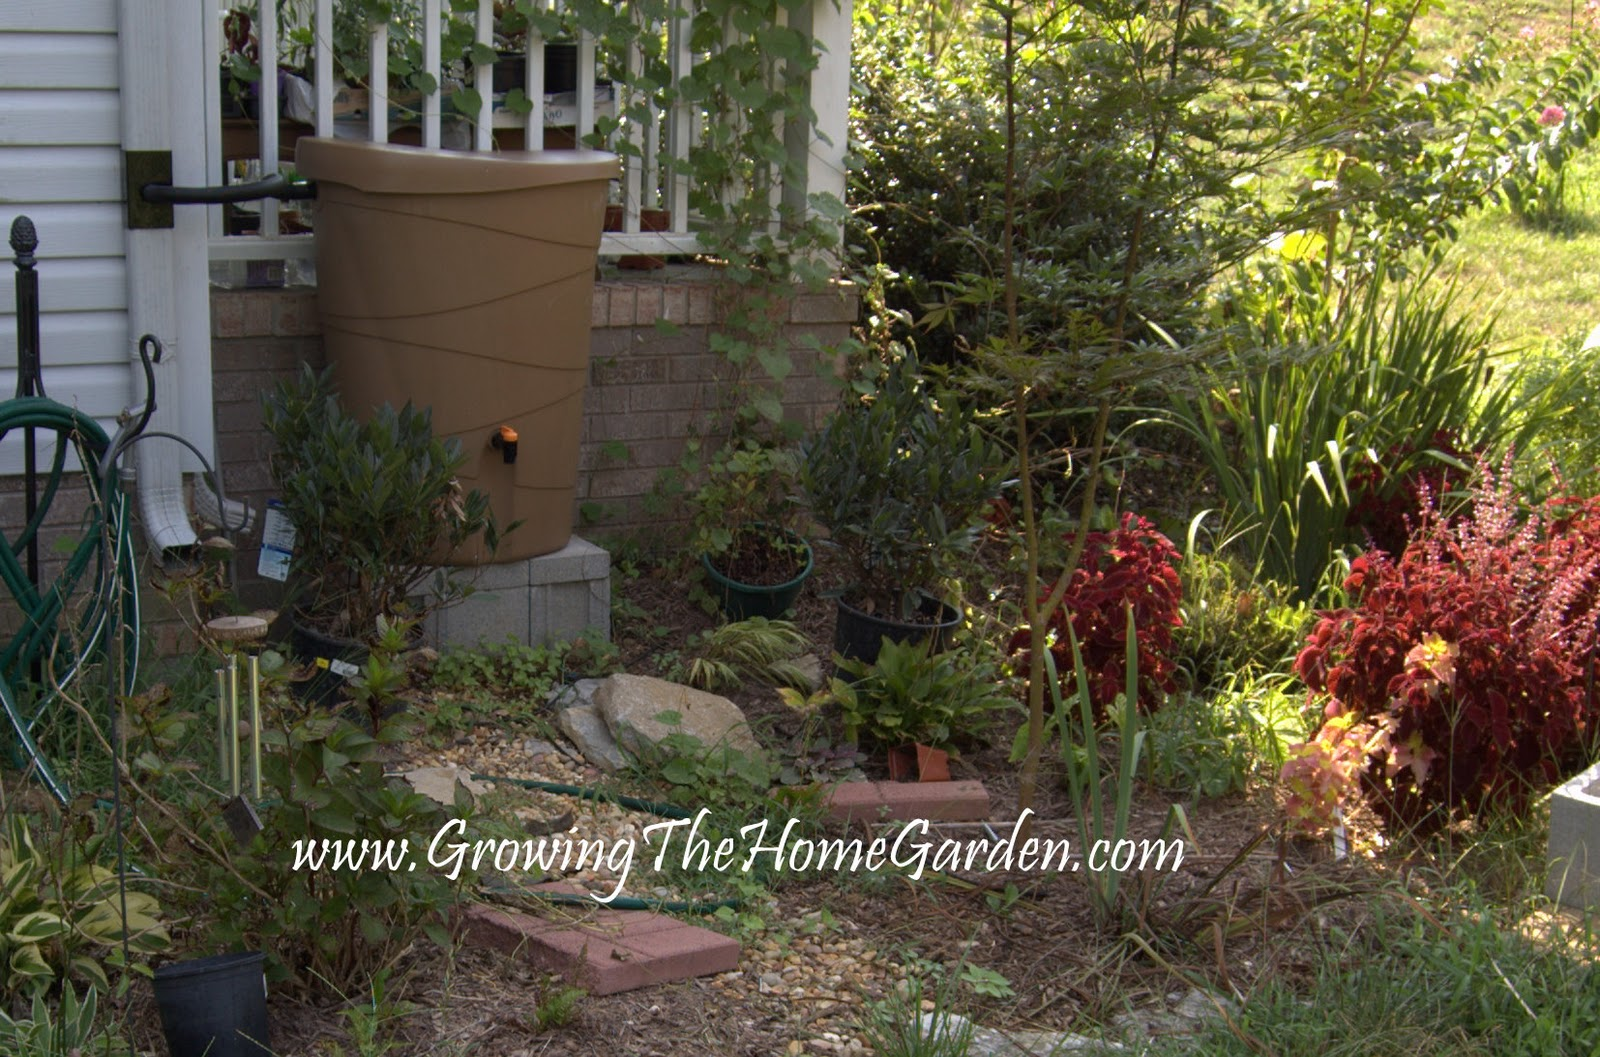 A Review of My Rain Barrel - Growing The Home Garden